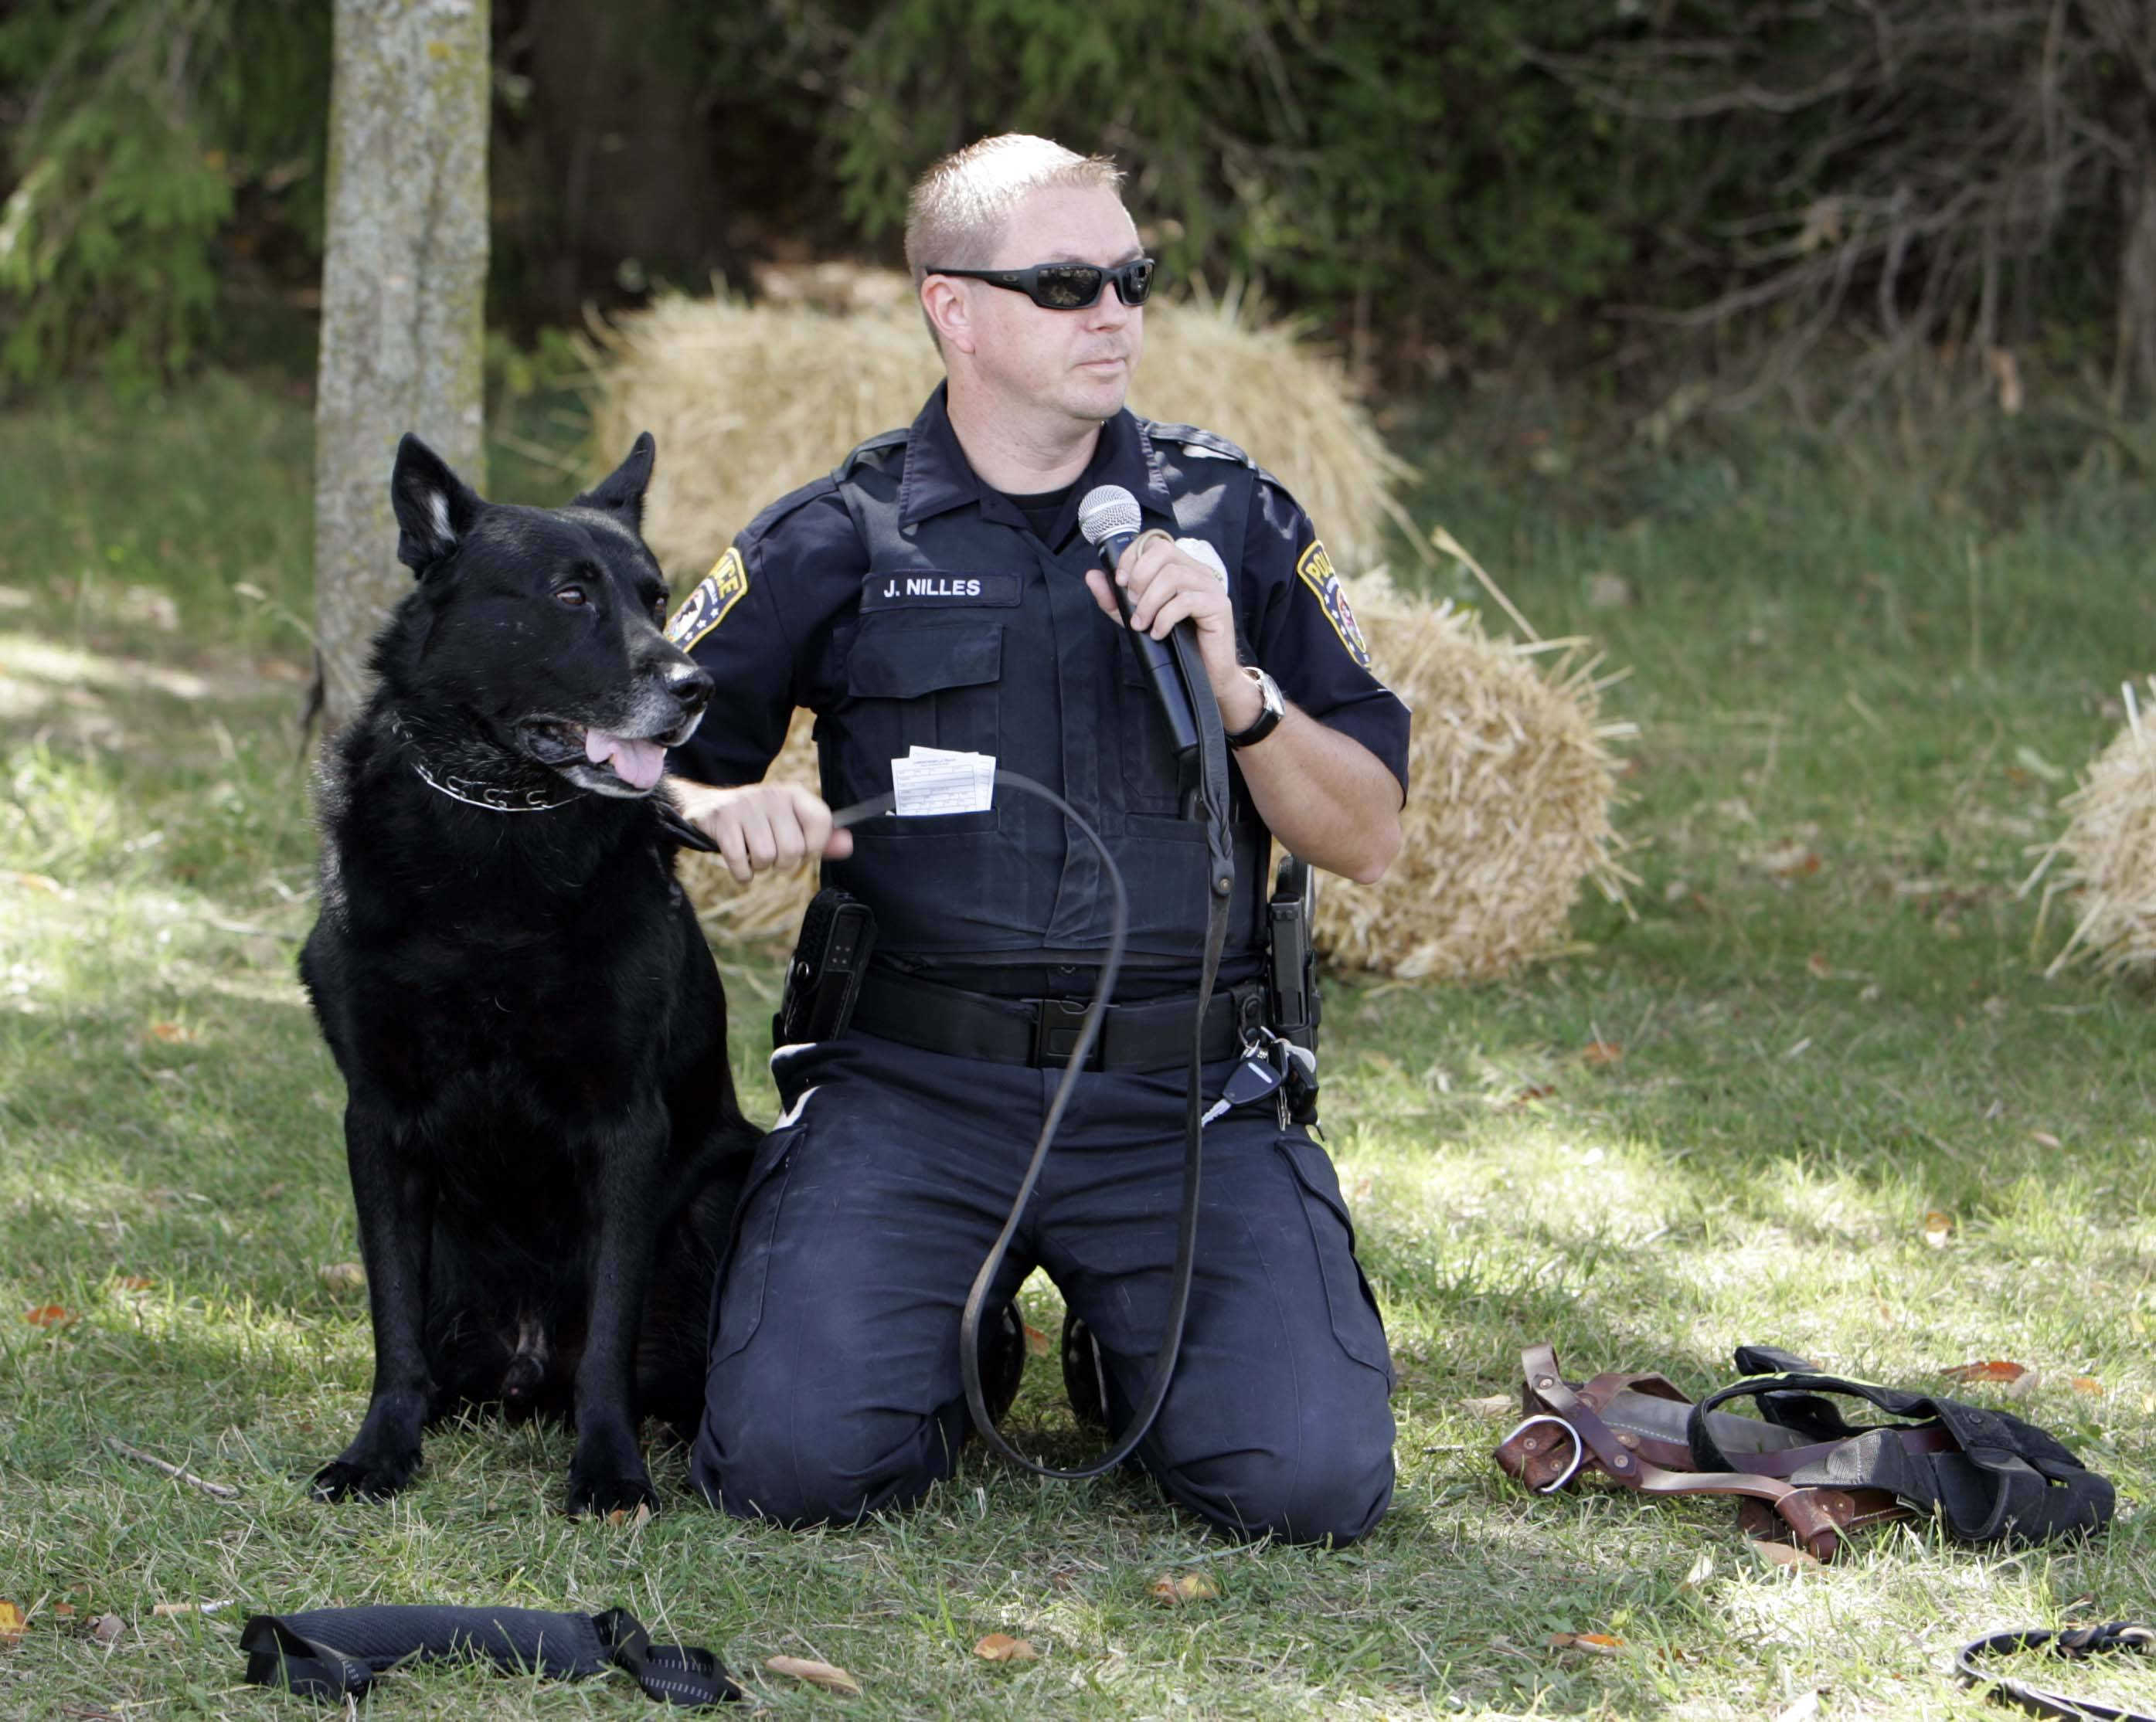 Carpentersville Police Officer Jason Nilles explains how his dog Keeper performs at work during a previous Dog Days of Dundee event.